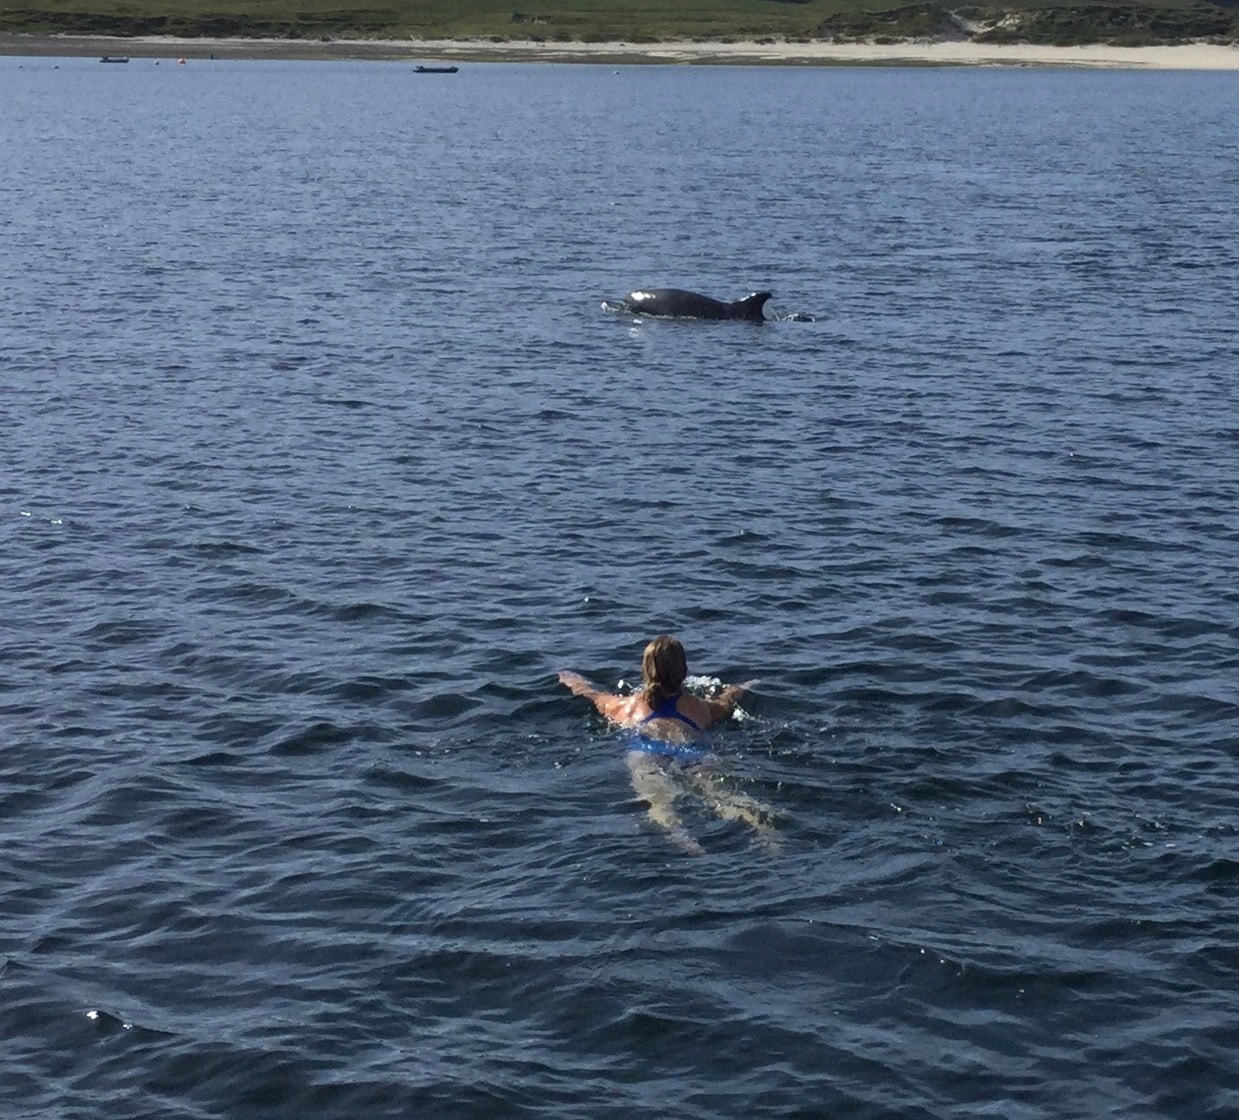 Swimming with whales on Zuza